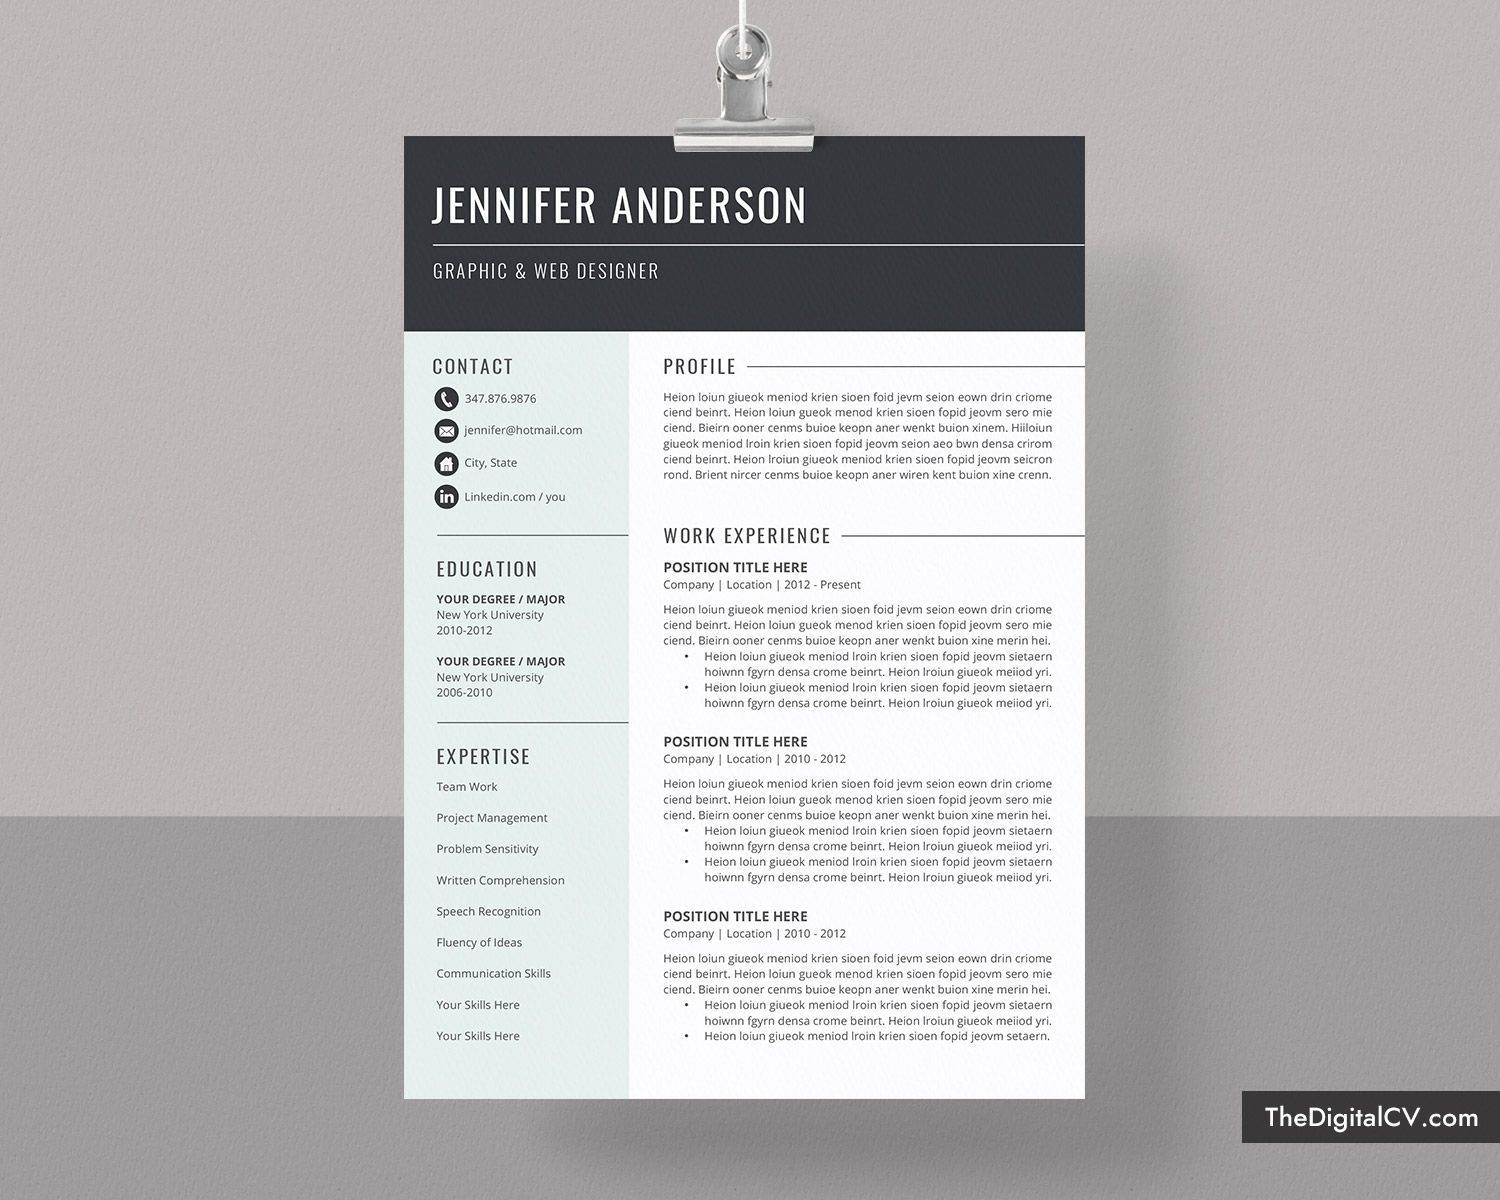 basic and simple resume template cv cover letter in microsoft word free professional best Resume Best Word Resume Templates 2020